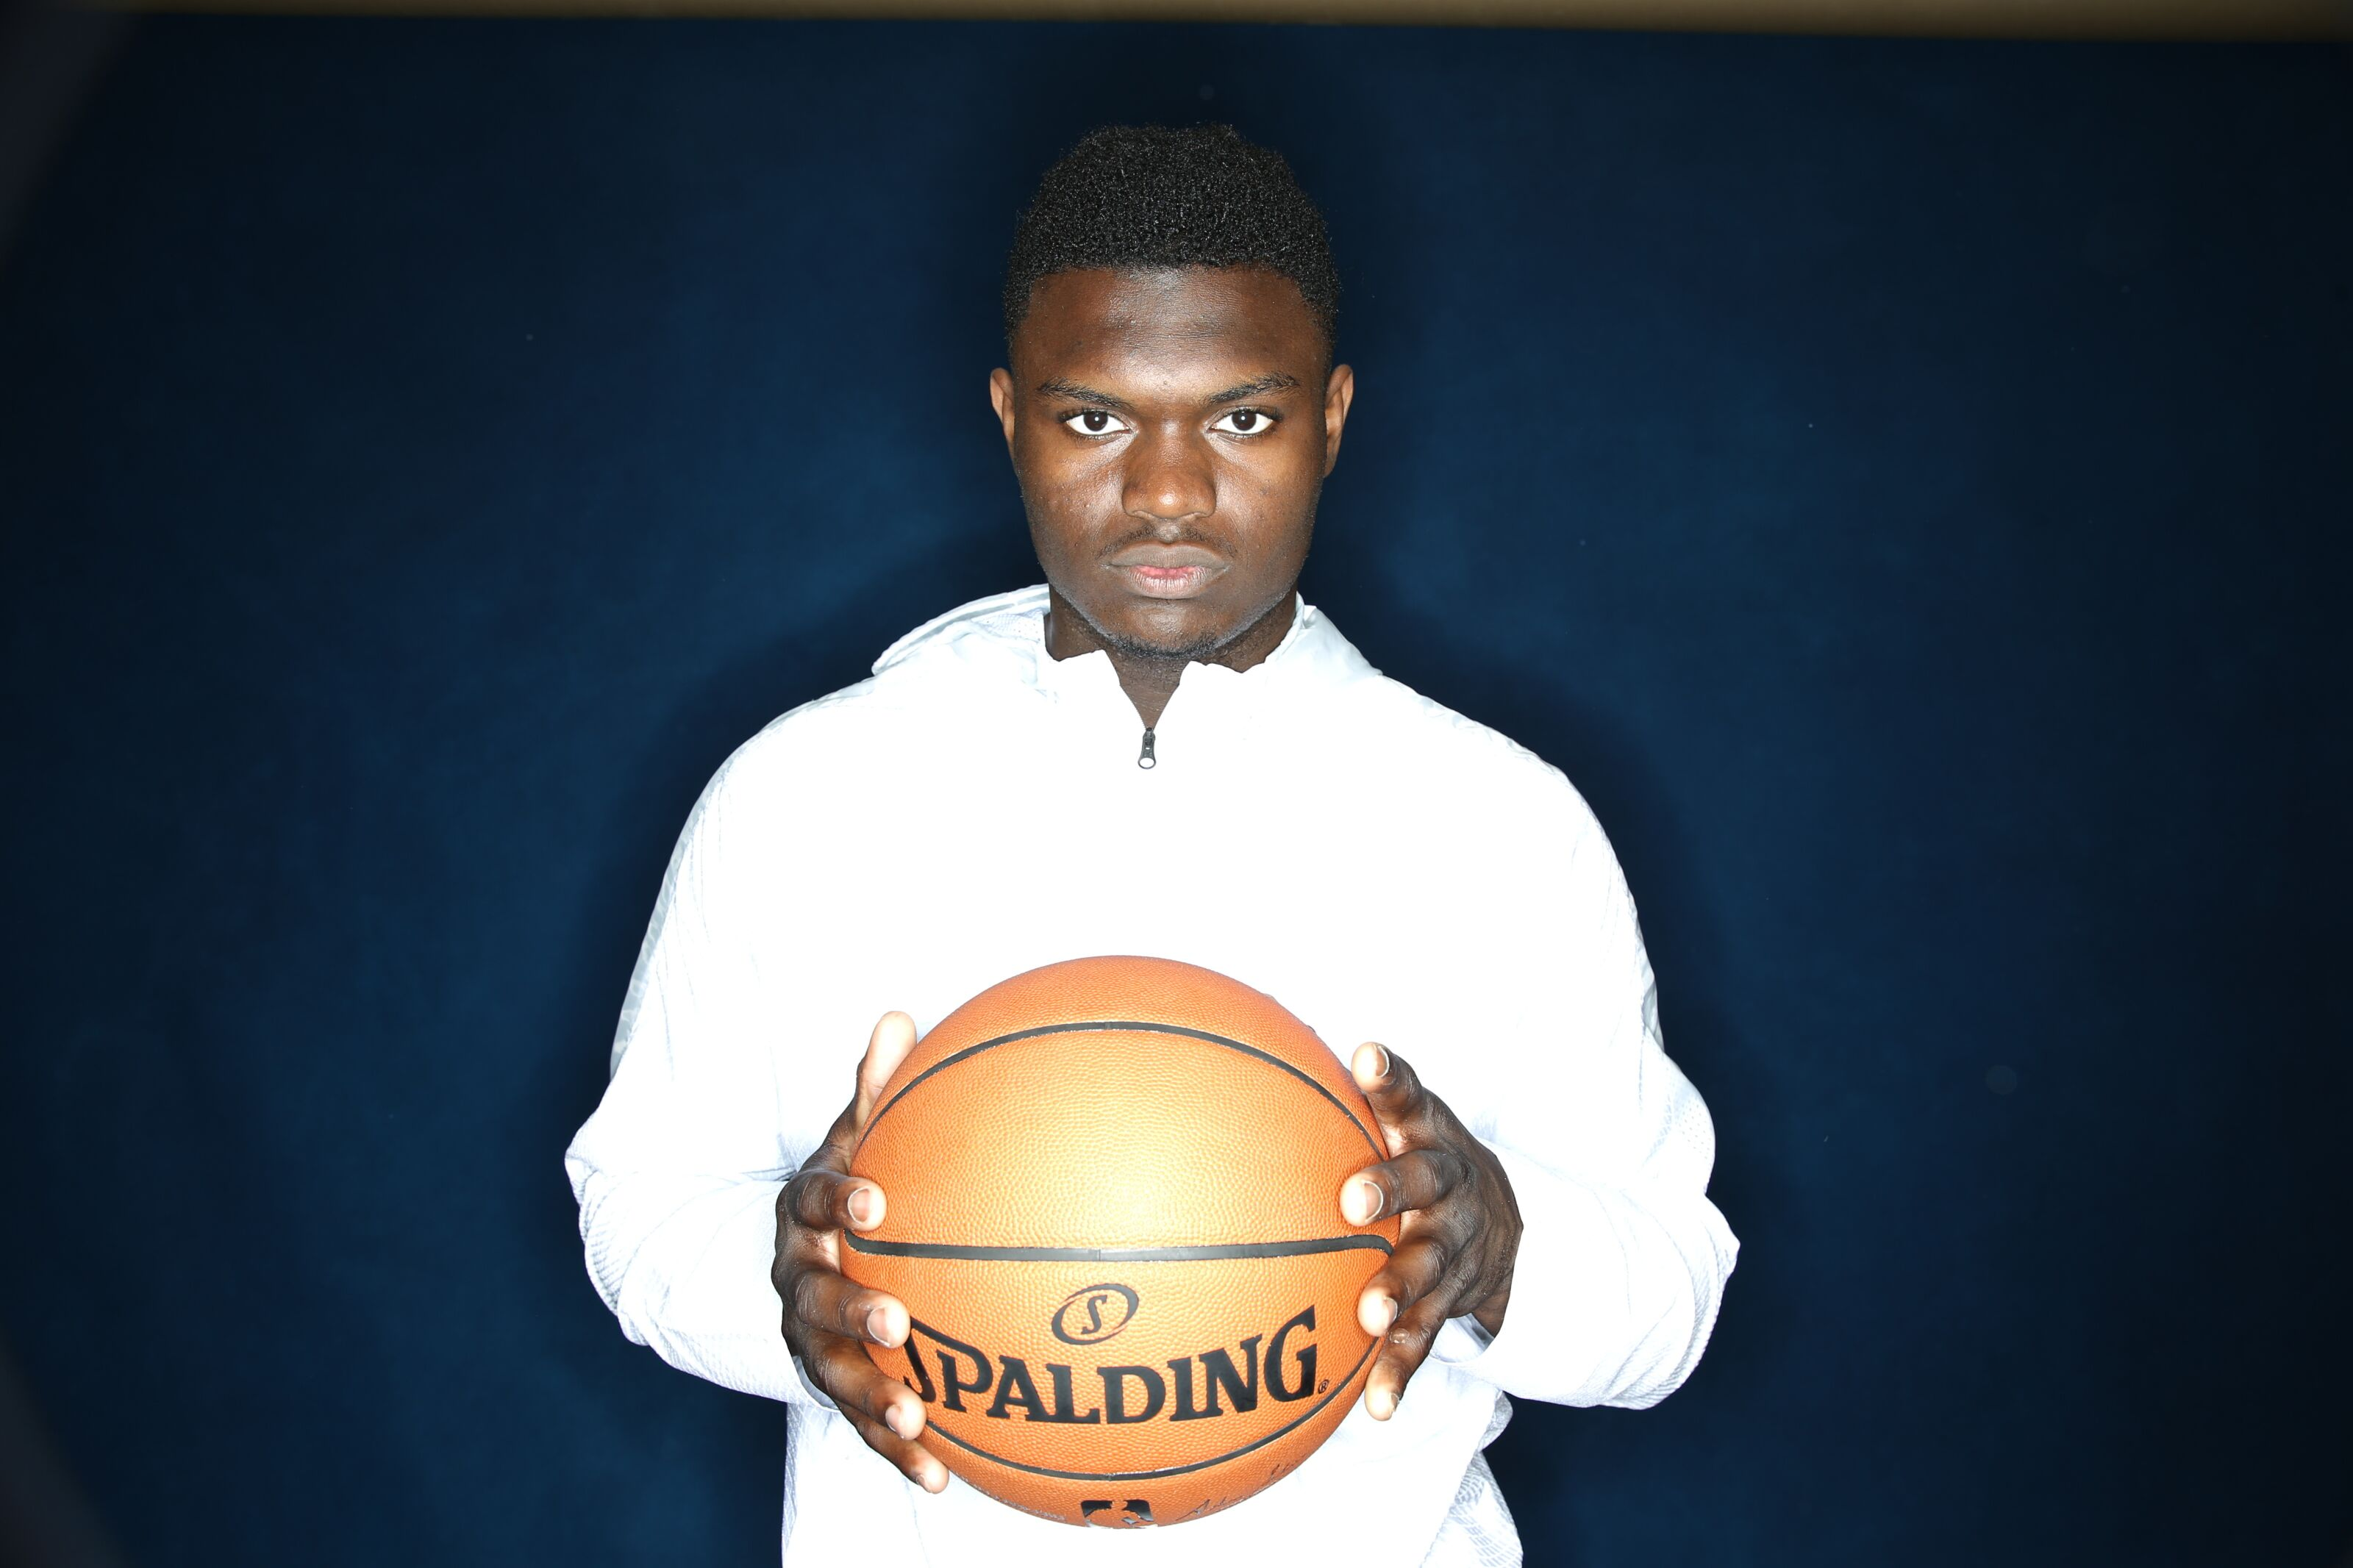 CHICAGO, IL - MAY 14: Zion Williamson poses for a portrait at the 2019 NBA Draft Combine on May 14, 2019 at the Chicago Hilton in Chicago, Illinois. NOTE TO USER: User expressly acknowledges and agrees that, by downloading and/or using this photograph, user is consenting to the terms and conditions of the Getty Images License Agreement. Mandatory Copyright Notice: Copyright 2019 NBAE (Photo by David Sherman/NBAE via Getty Images)